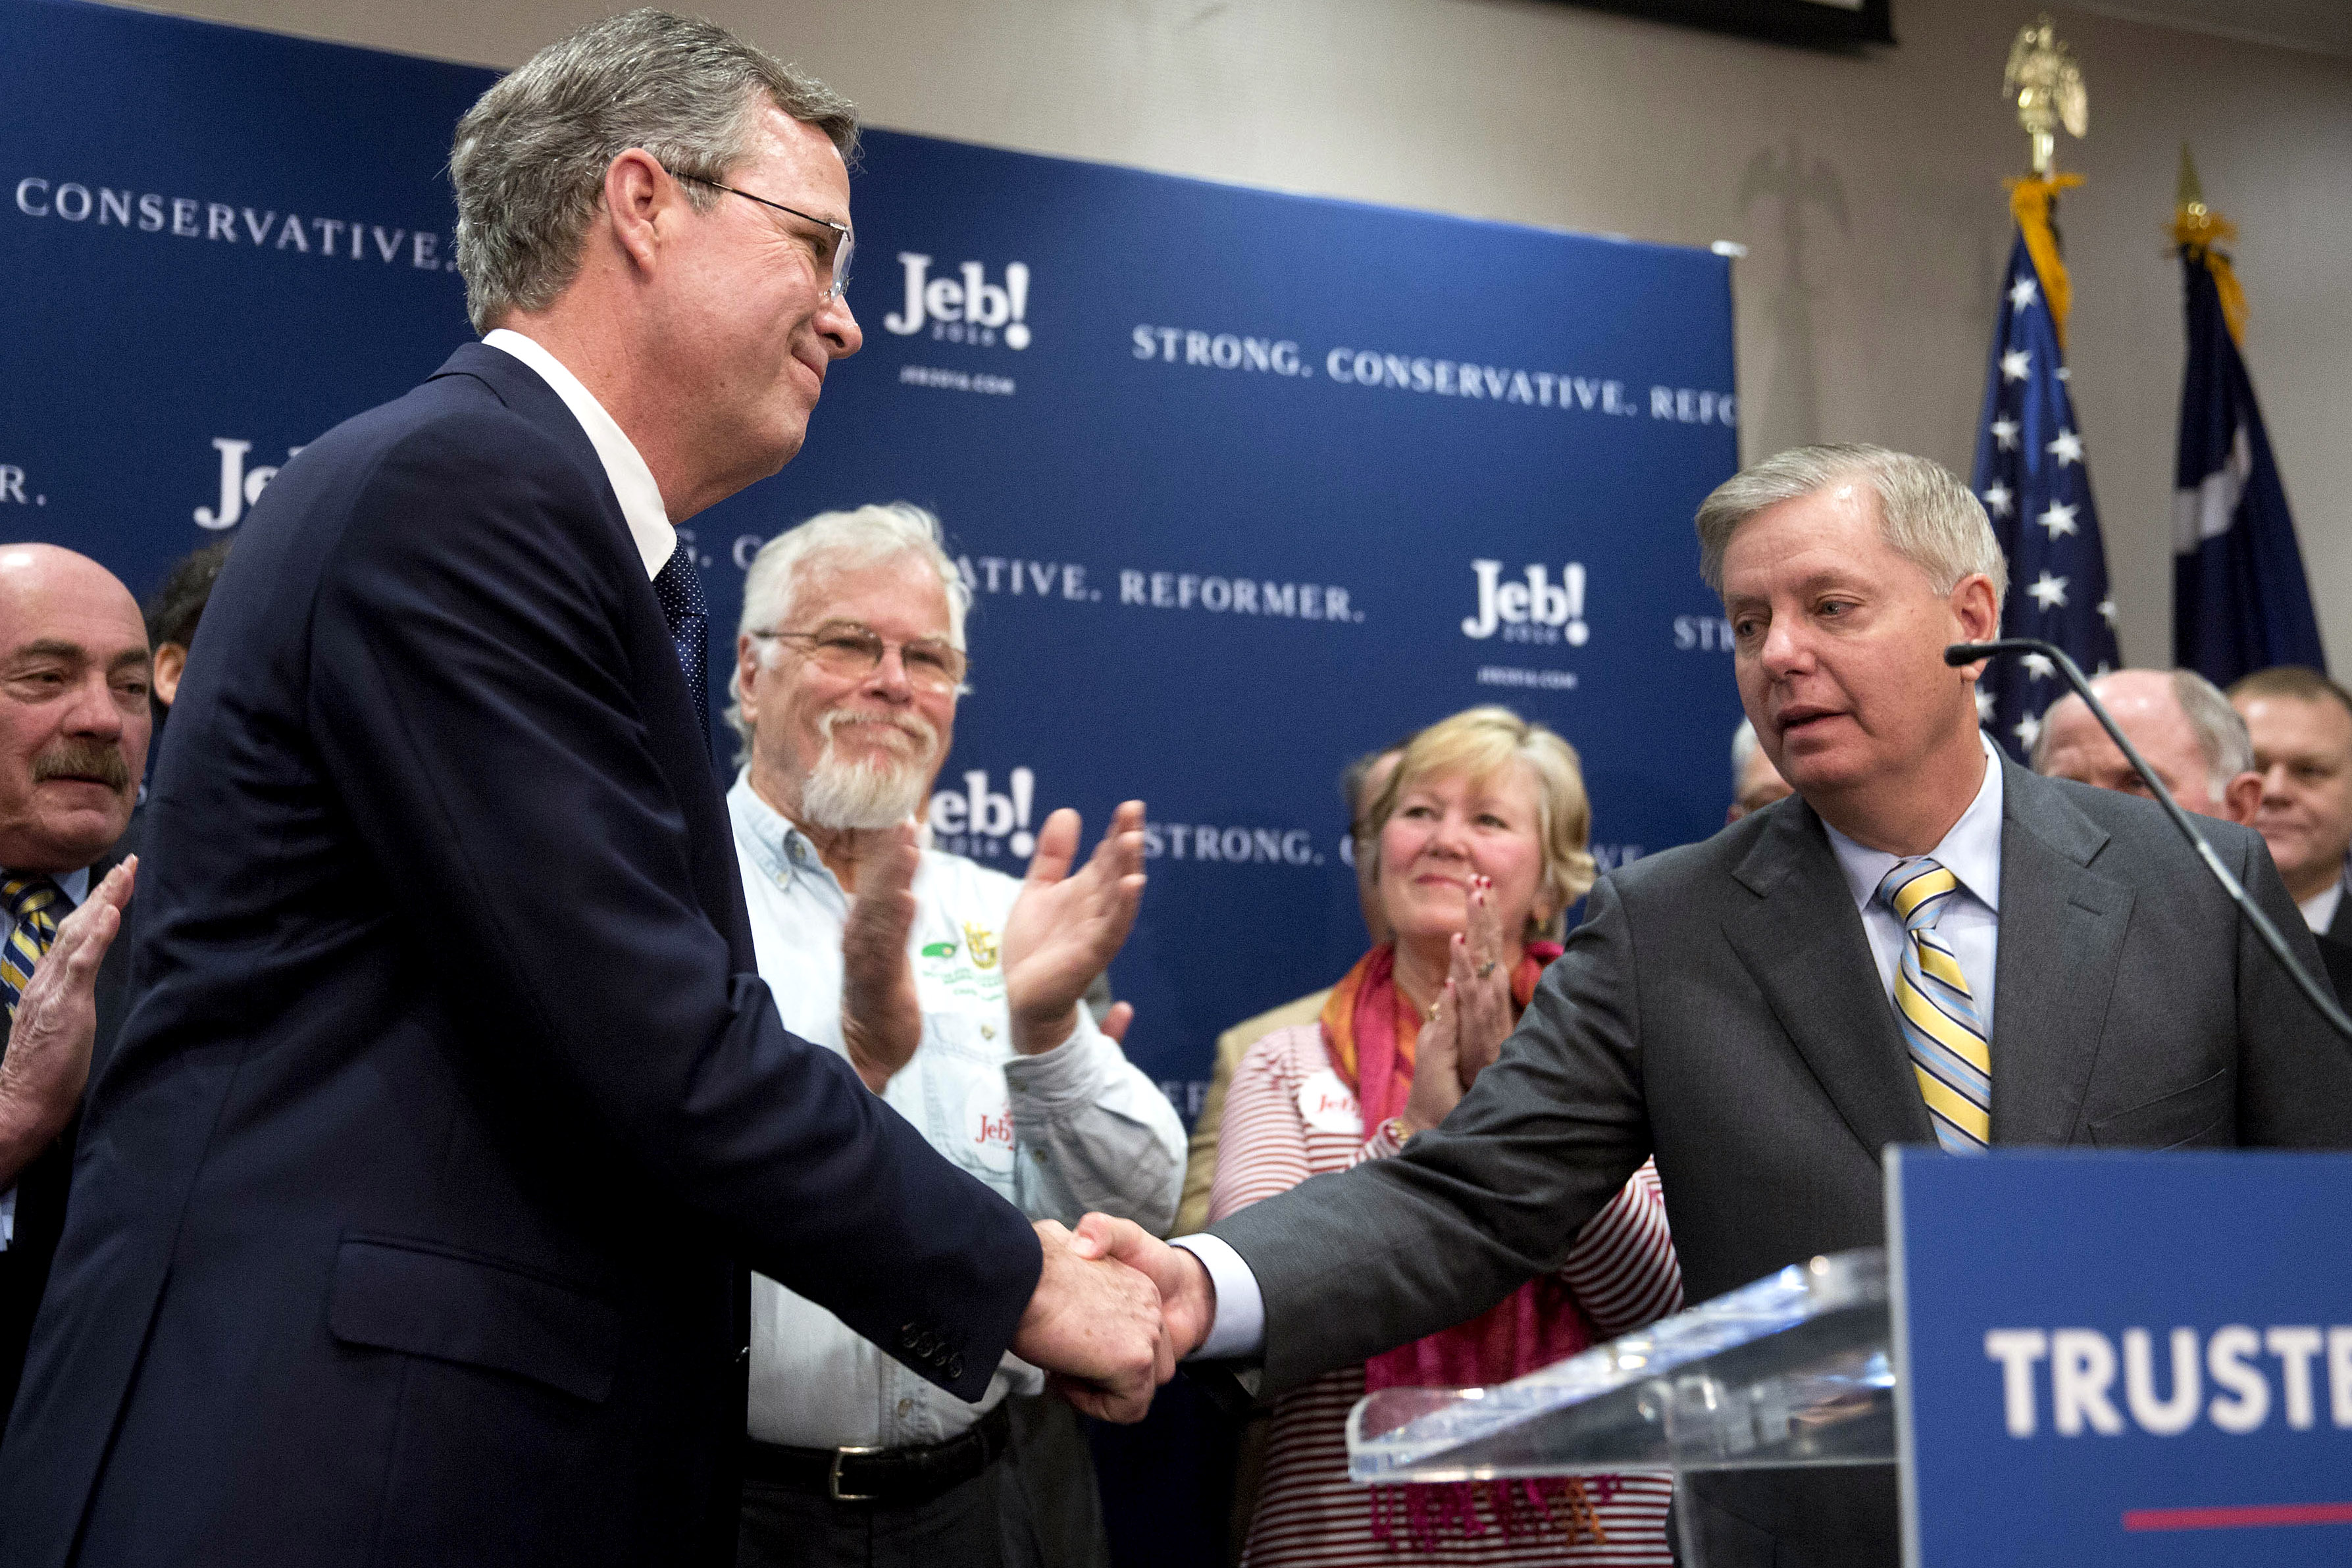 Former Florida Gov. Jeb Bush shakes hands with South Carolina Senator Lindsey Graham during a news conference in which Graham endorsed Bush for president in North Charleston, S.C. on Jan. 15, 2016.